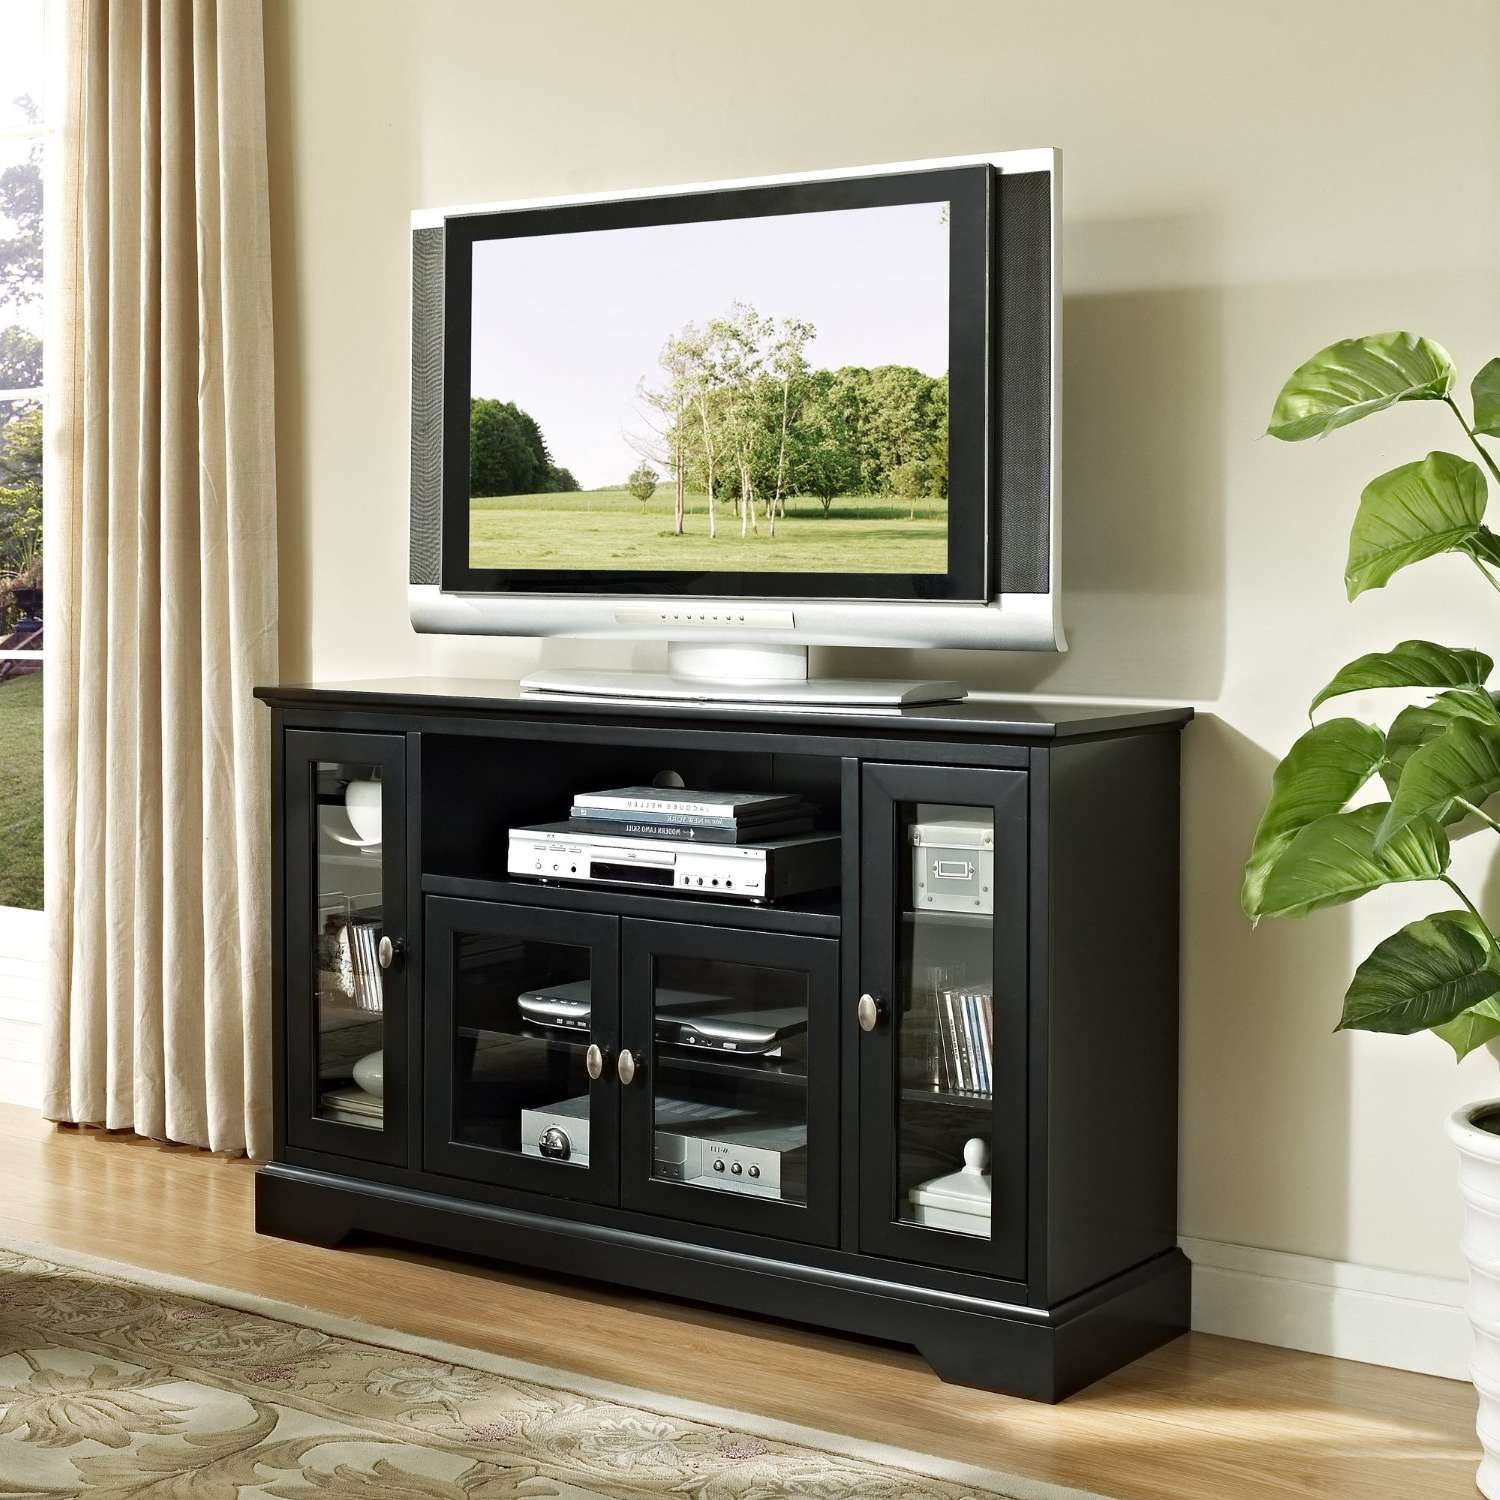 Light Wood Tv Stand Simple Room With Ikea Besta Media Cabinet Of For Wooden Tv Stands With Doors (View 7 of 15)